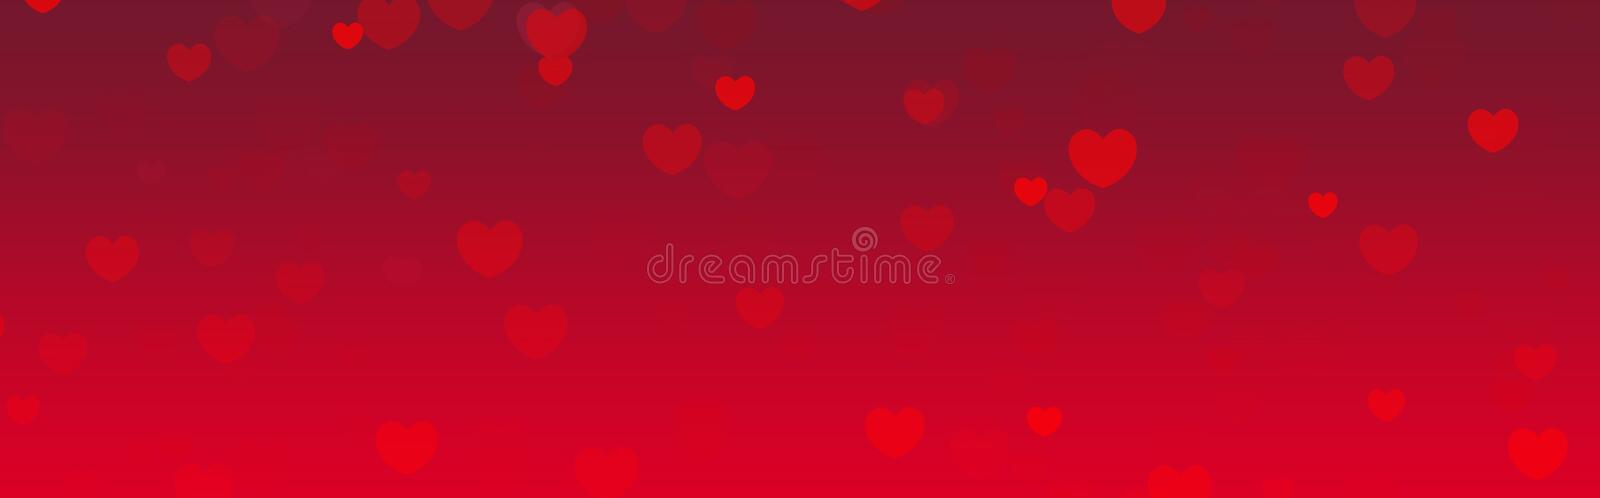 Valentines day web header vector illustration